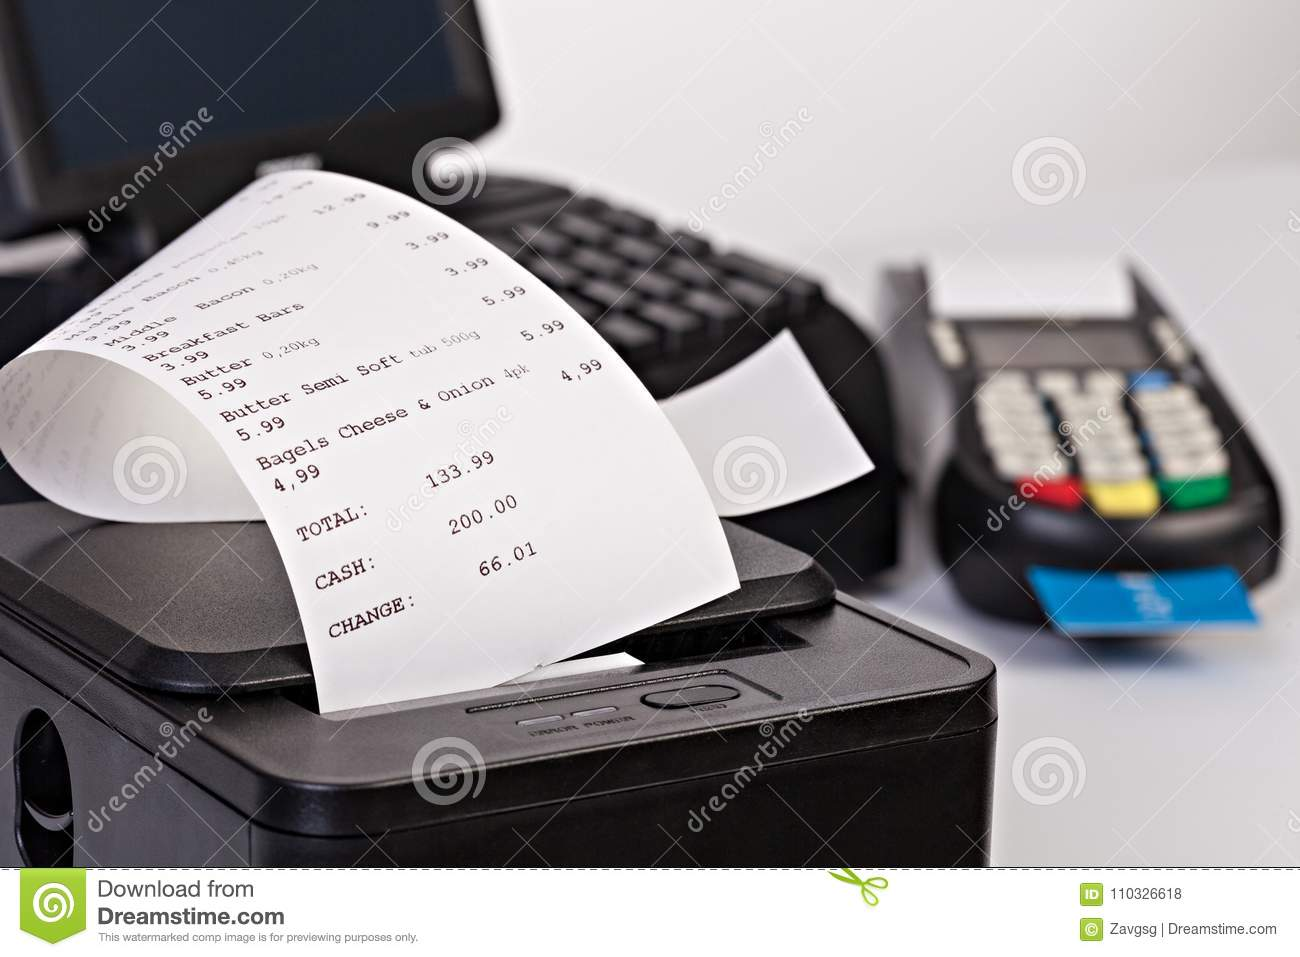 Point of Sale System For Retail with paper shoppin